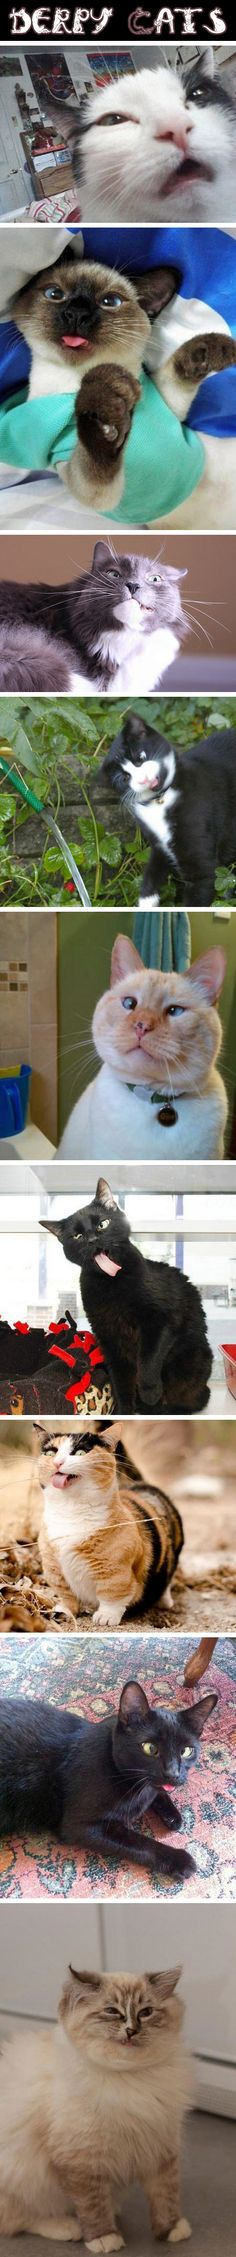 Derpy Cats…   ...........click here to find out more     http://googydog.com